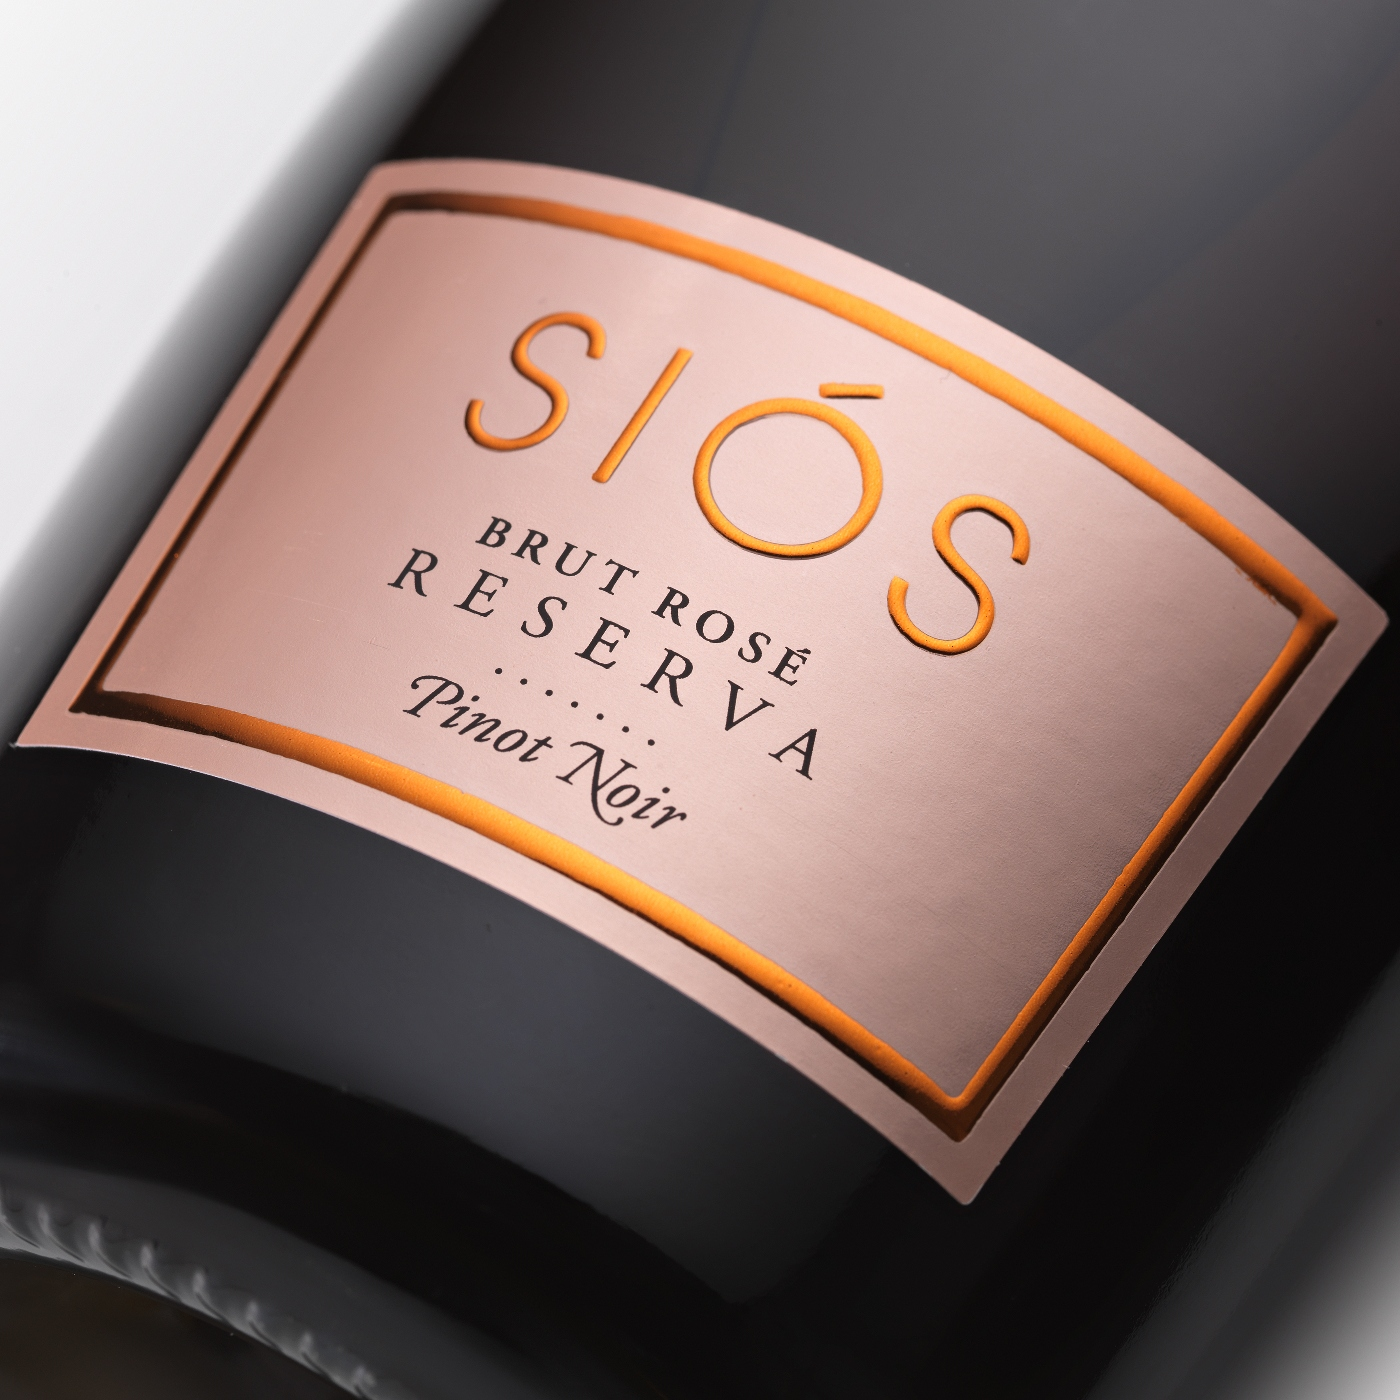 Sparkling wine Siós Brut Rosé label | Costers del Sió Winery